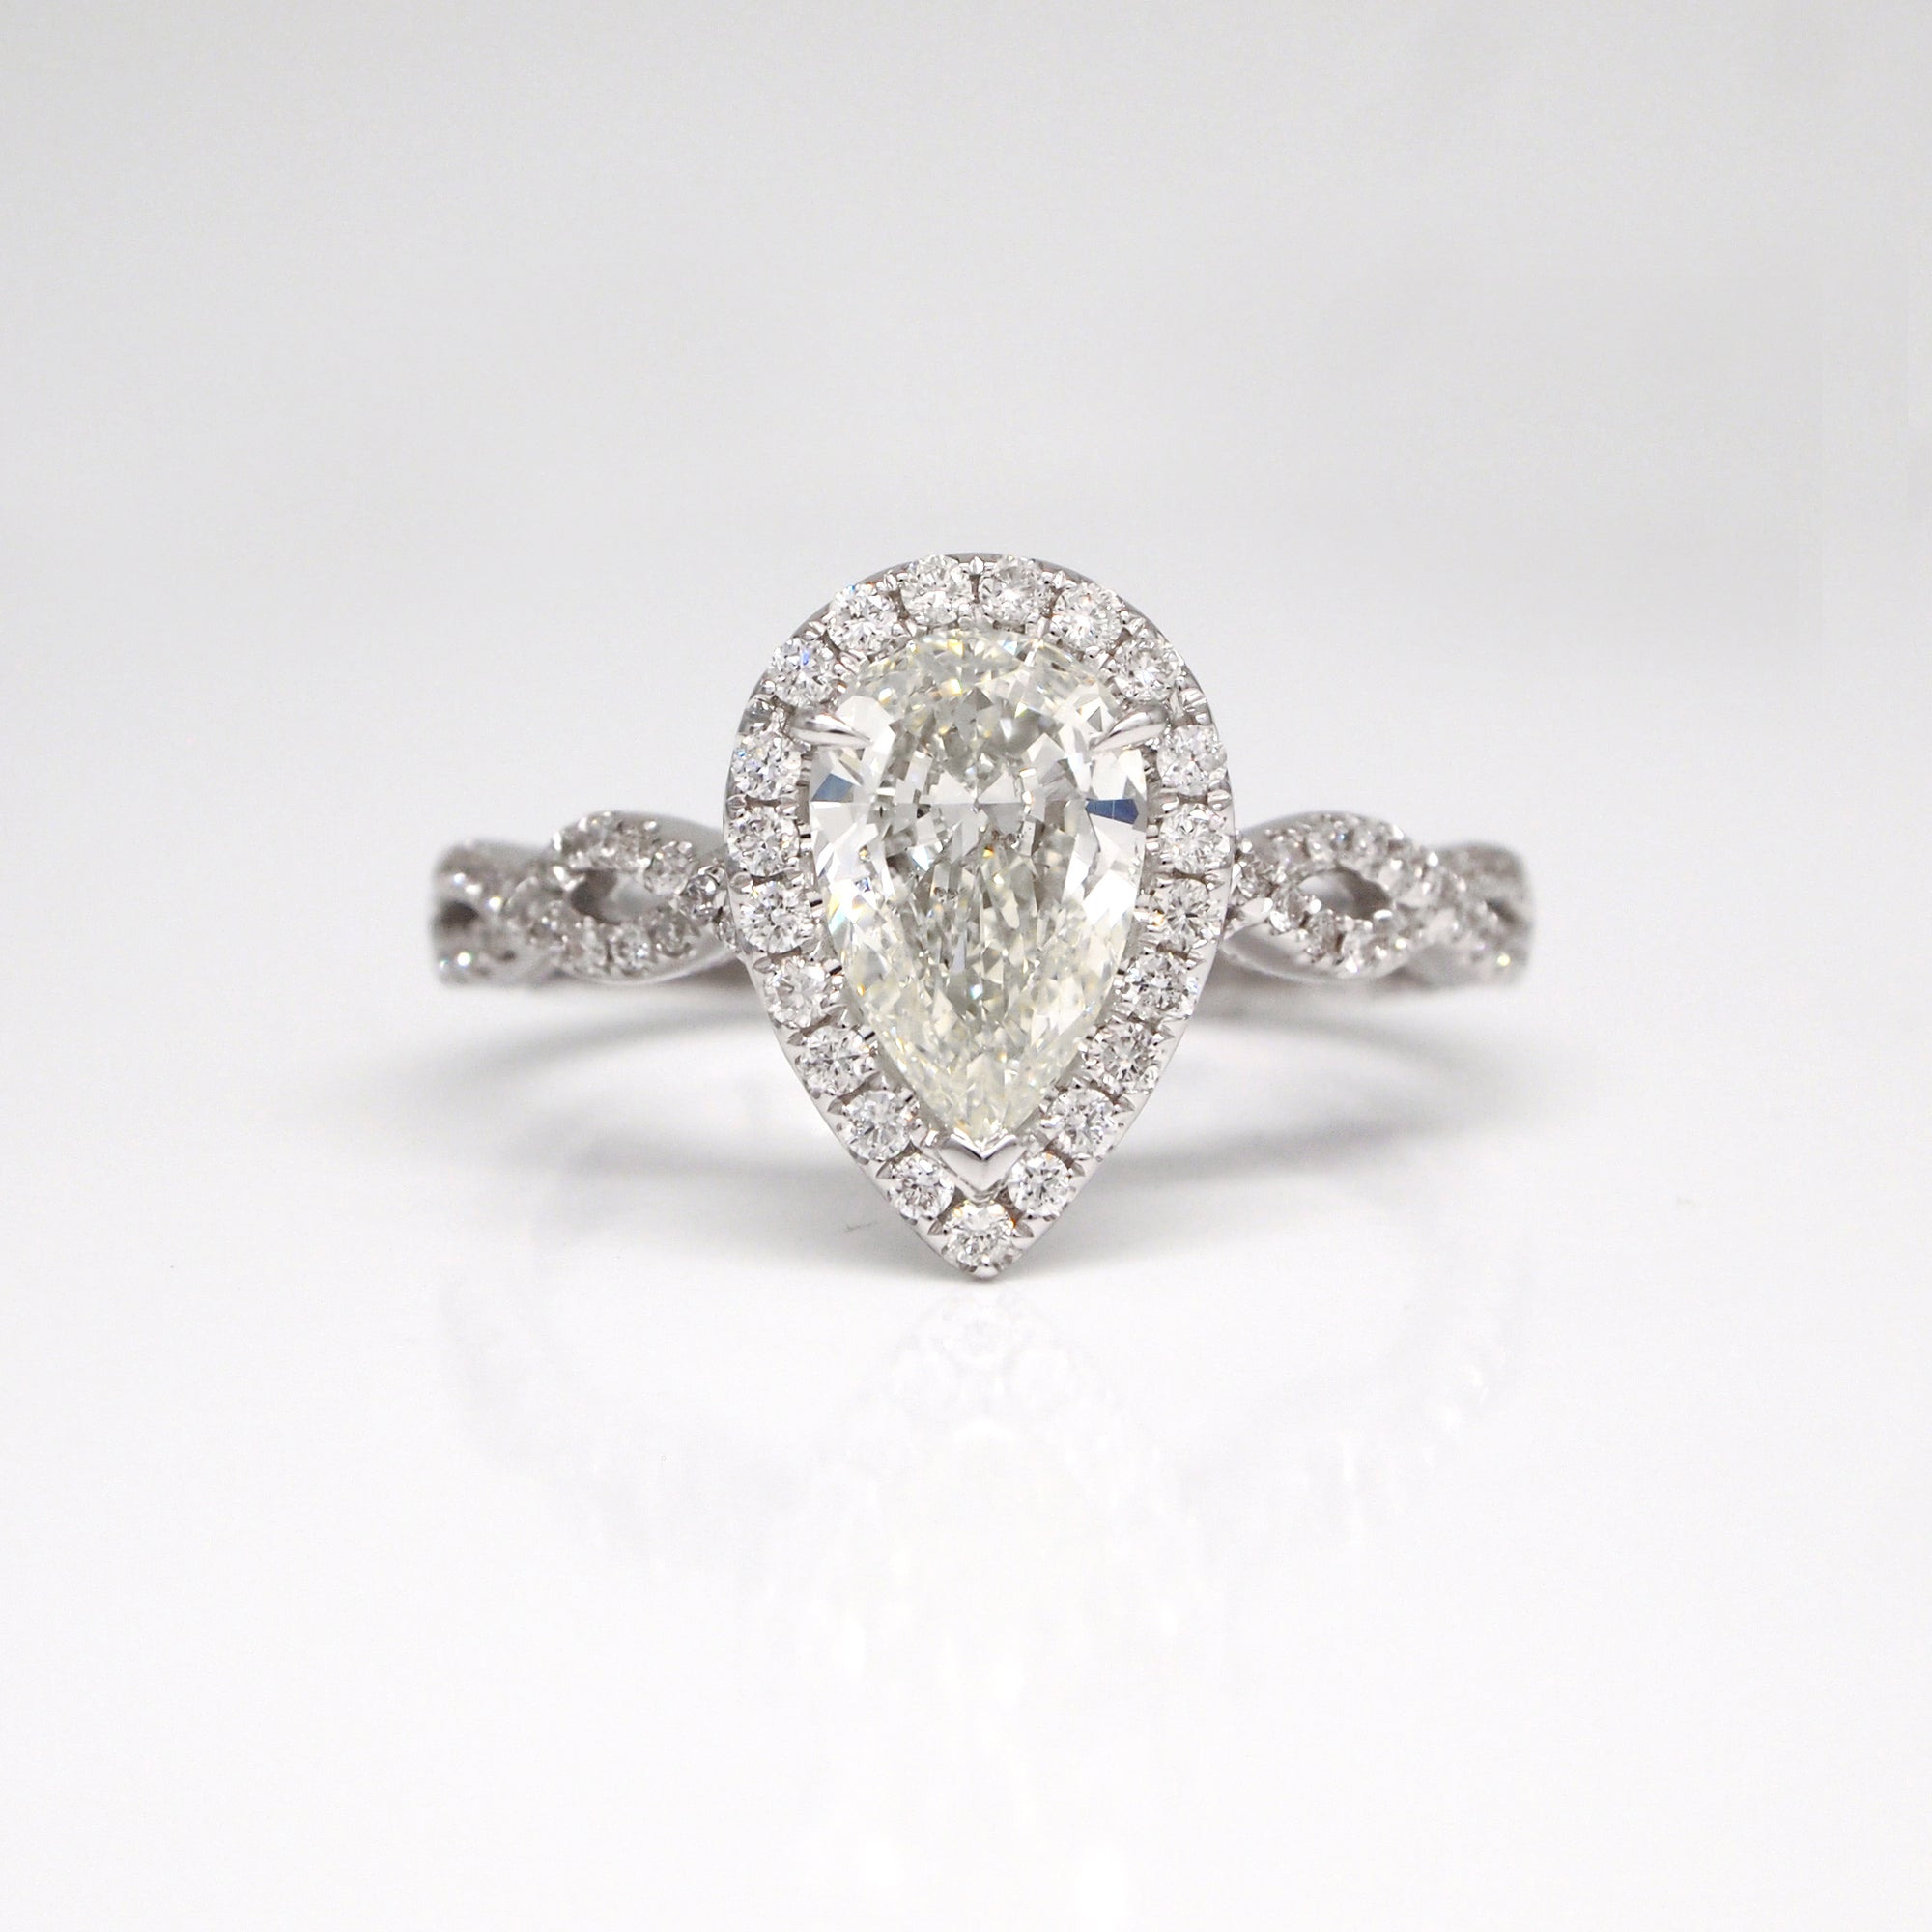 1.00 carat pear-shaped diamond set in 14K white gold with 79 brilliant cut diamonds weighing a total of 0.31 carats